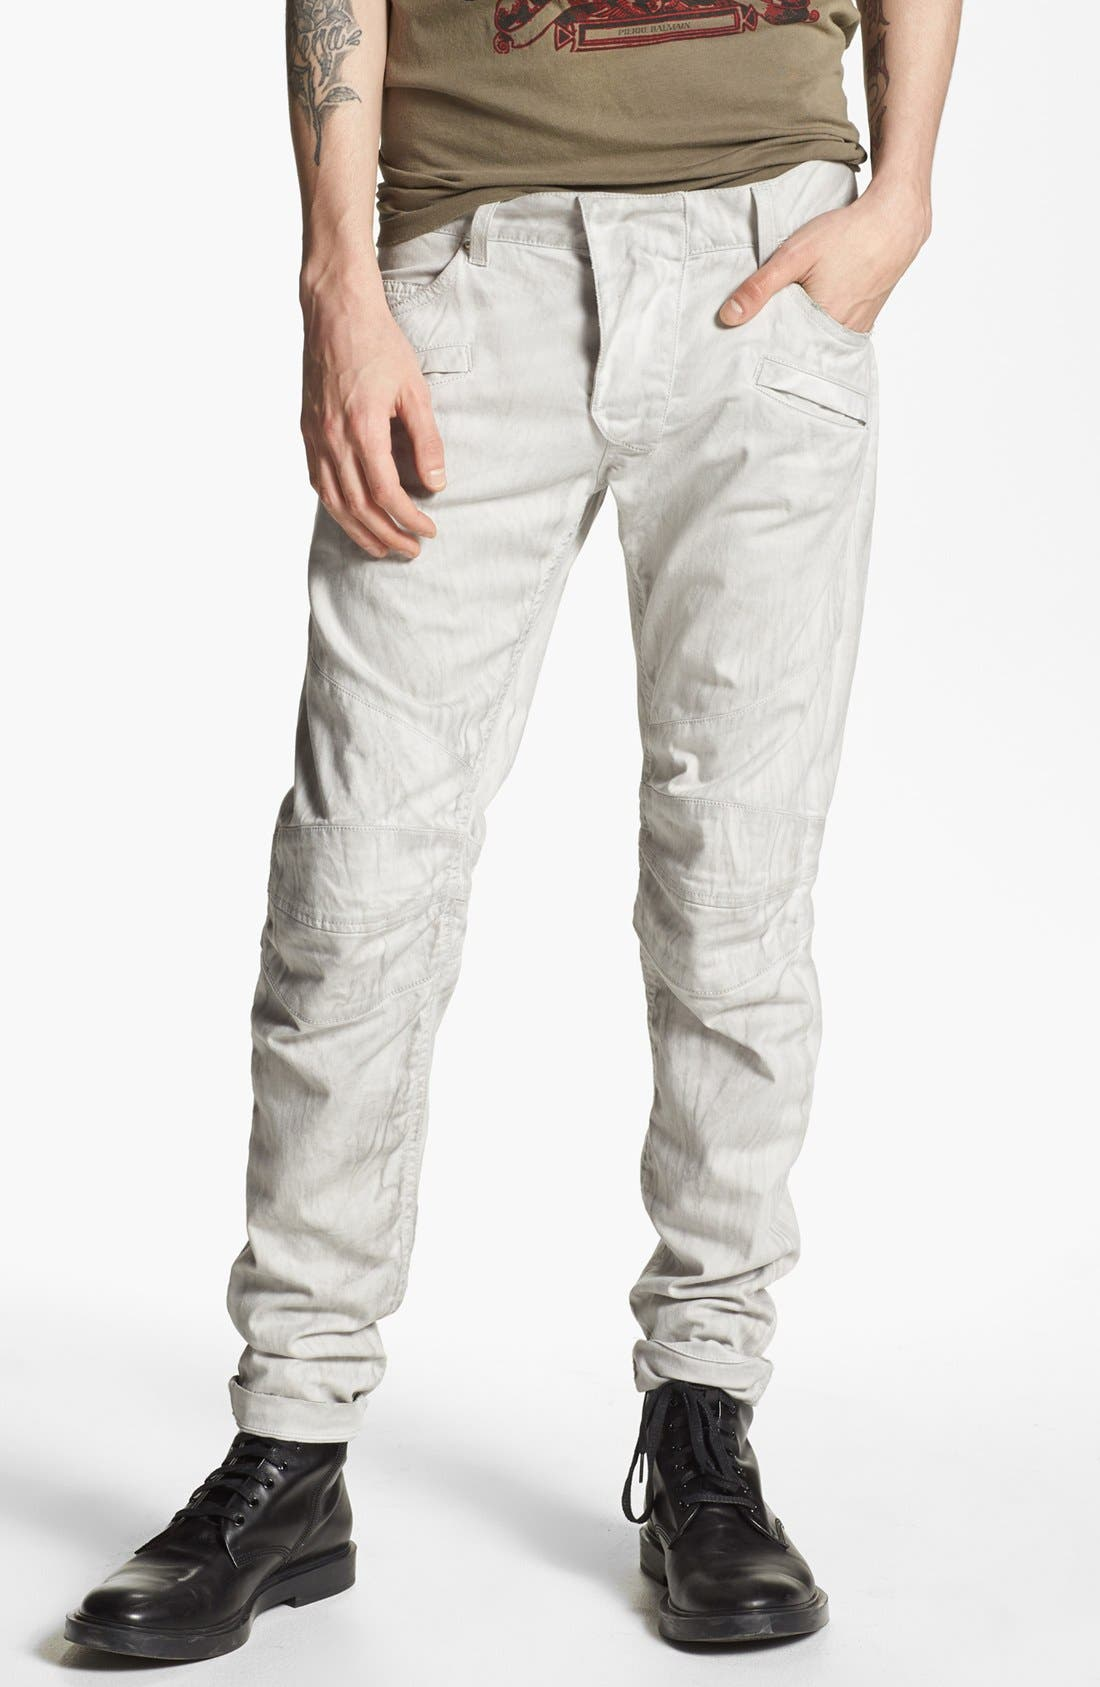 Main Image - Pierre Balmain Slim Fit Jeans (Off White) (Online Only)